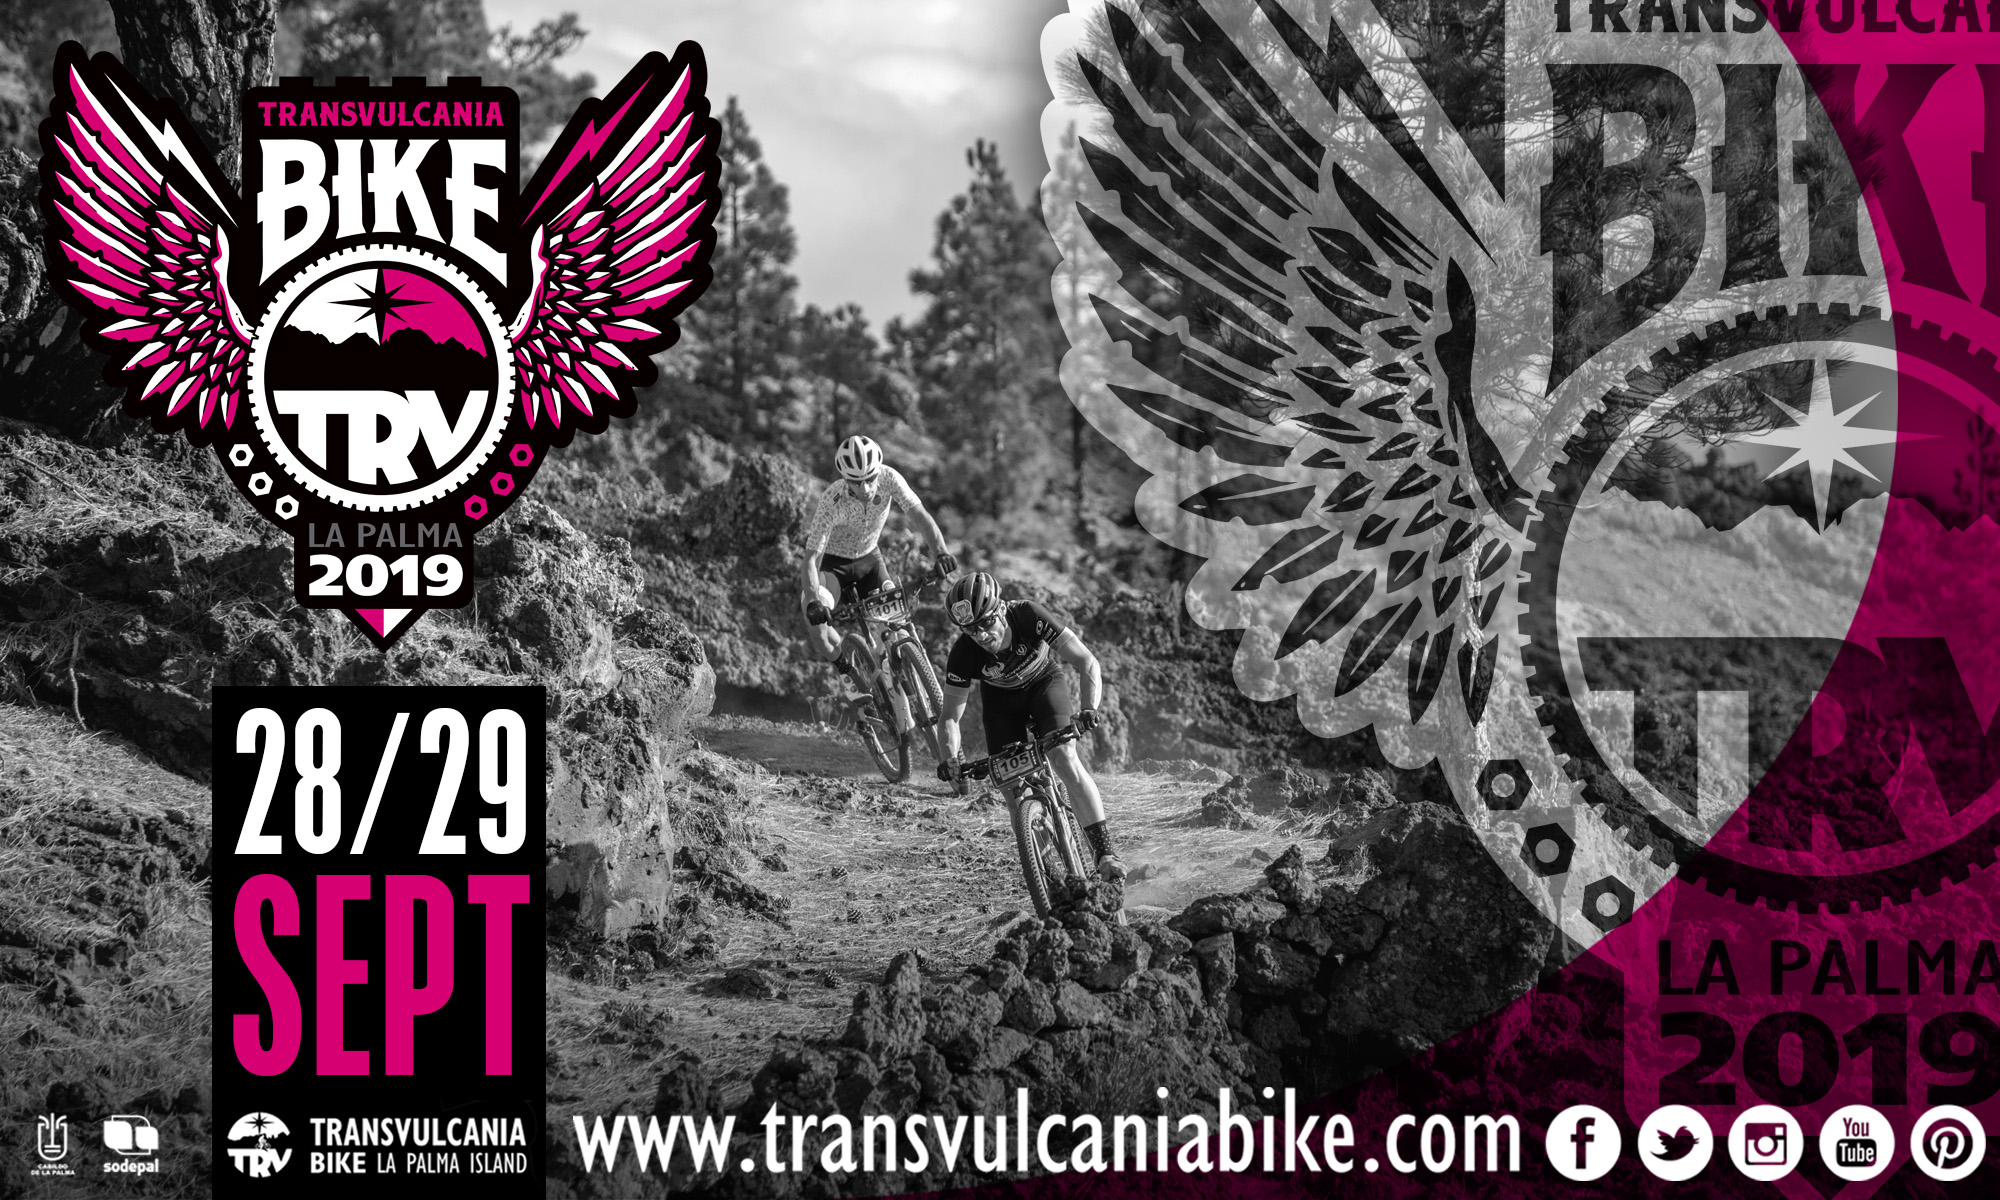 BTT: TRANSVULCANIA BIKE 2019 ABRE INSCRIPCIONES (28-29SEP/30k-75k-Descenso) Grandes carreras de mountain bike en La Palma